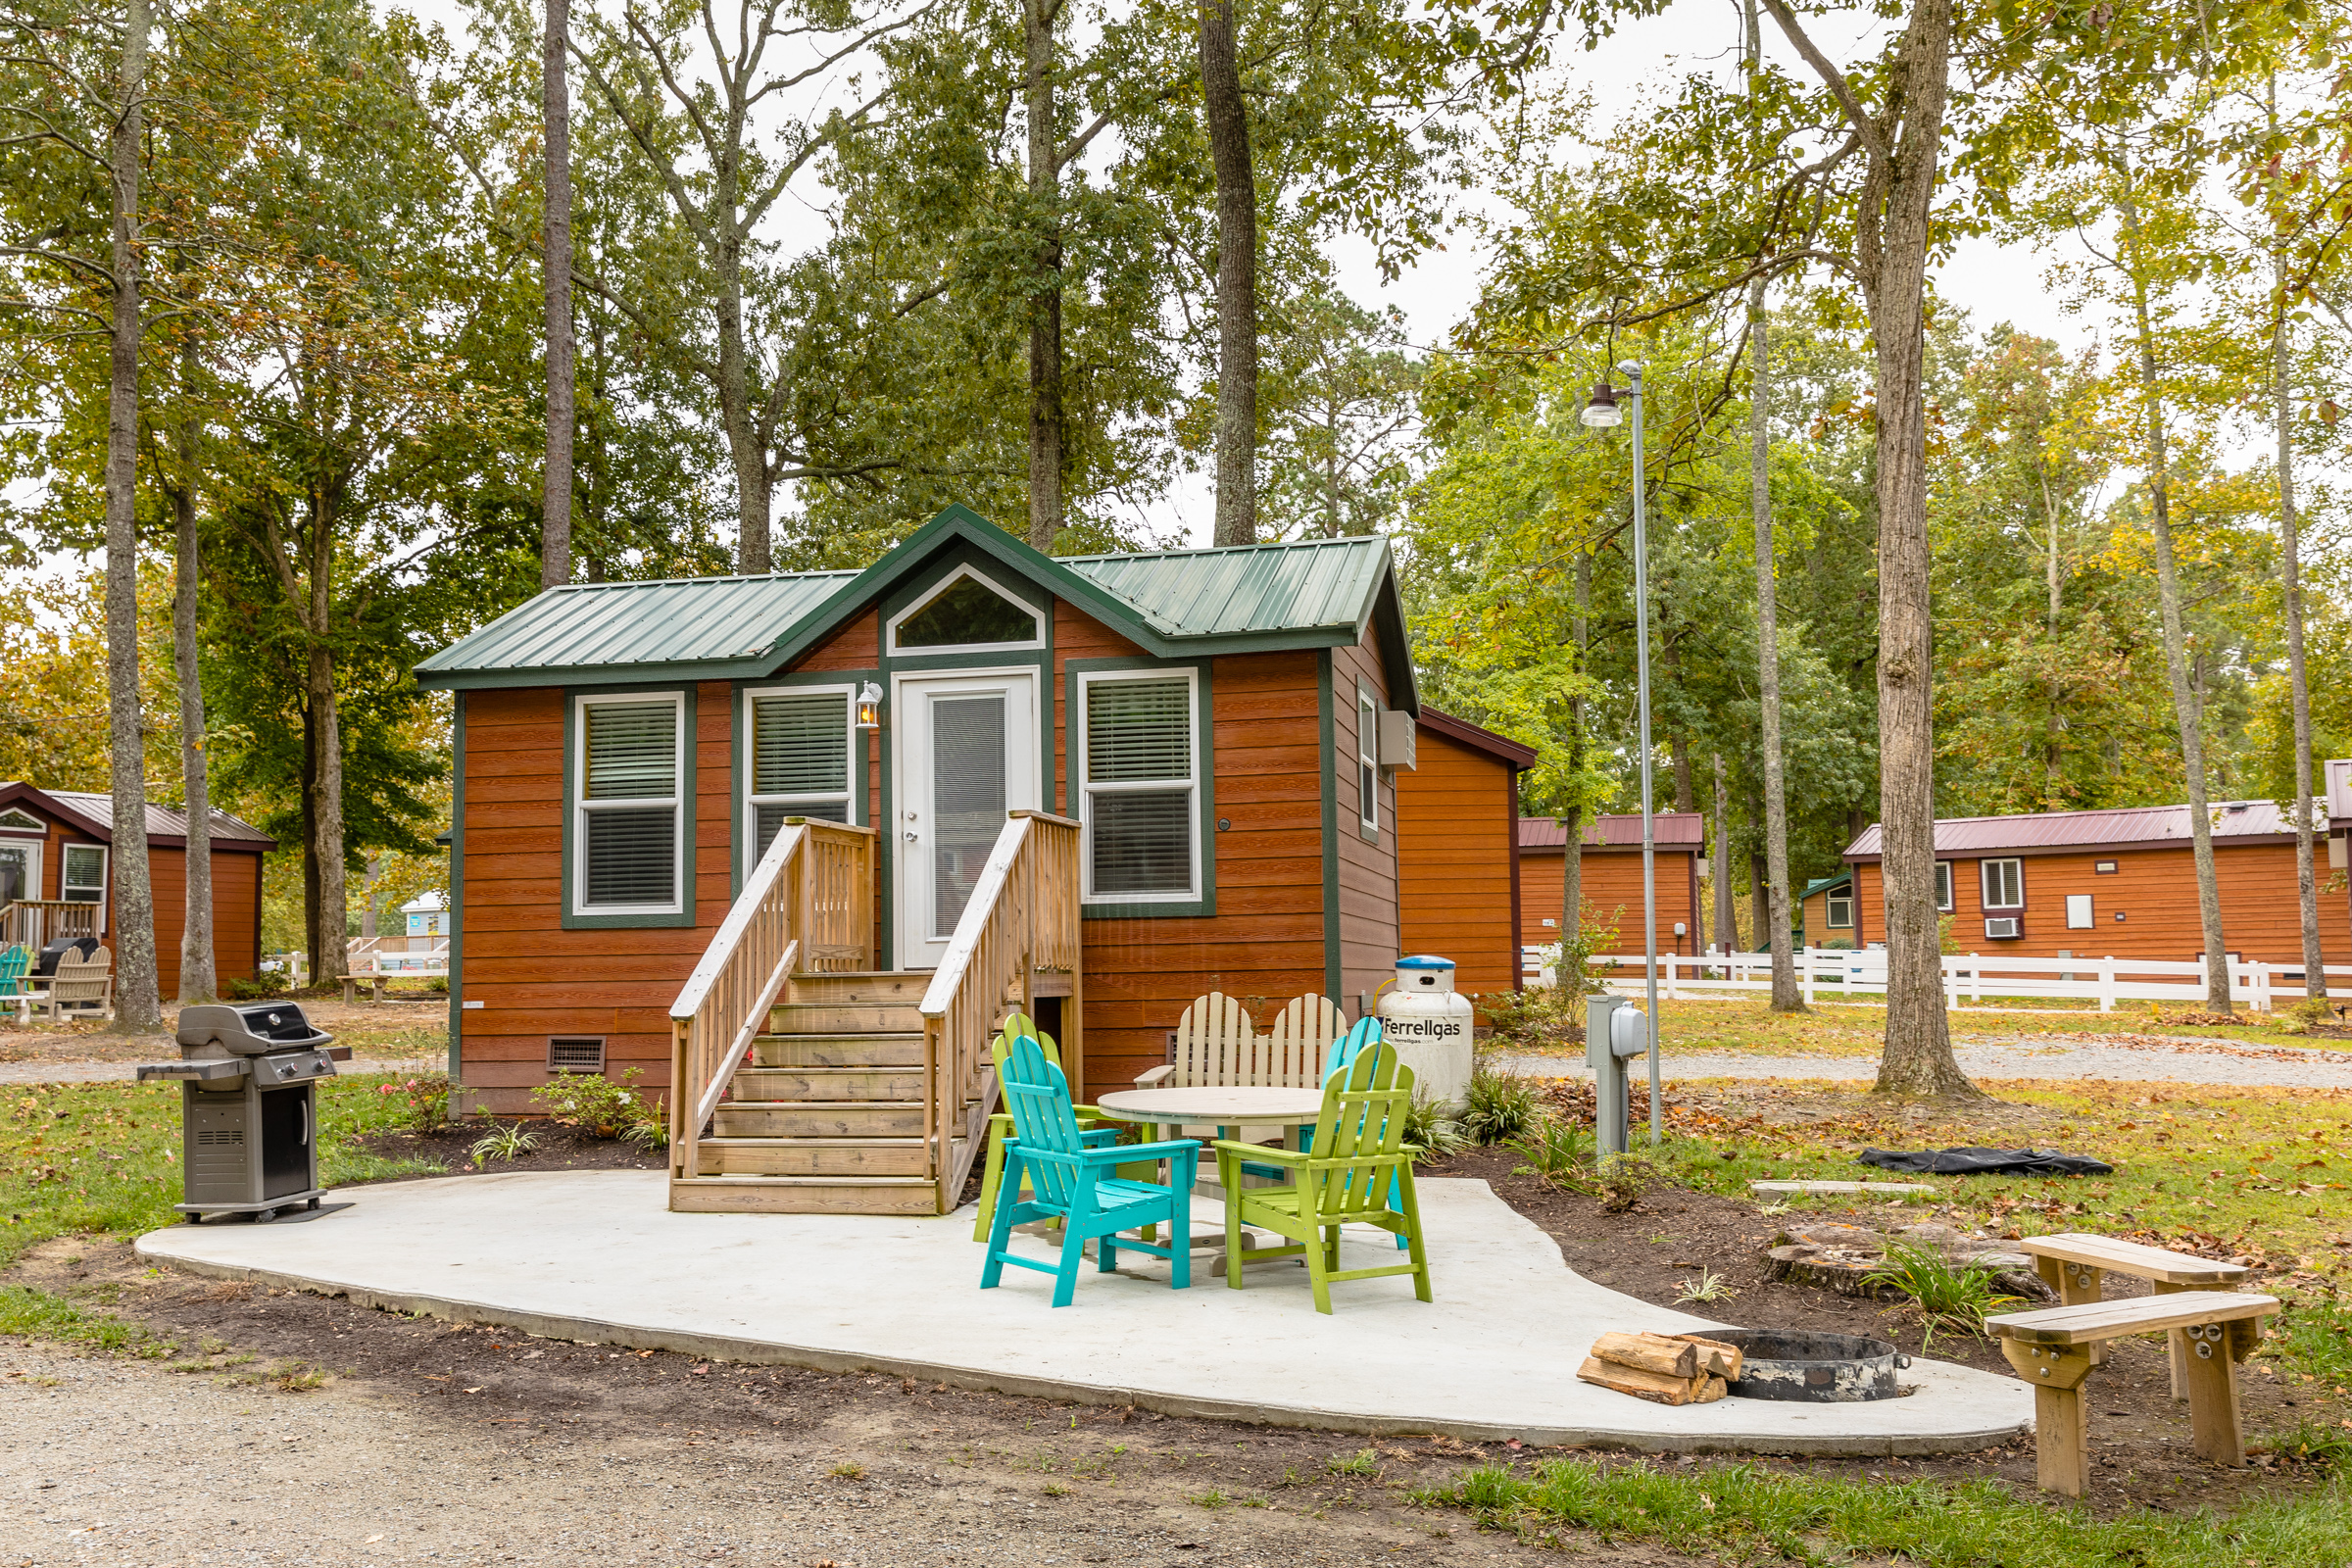 Deluxe cabins can accommodate from 4 - 8 people